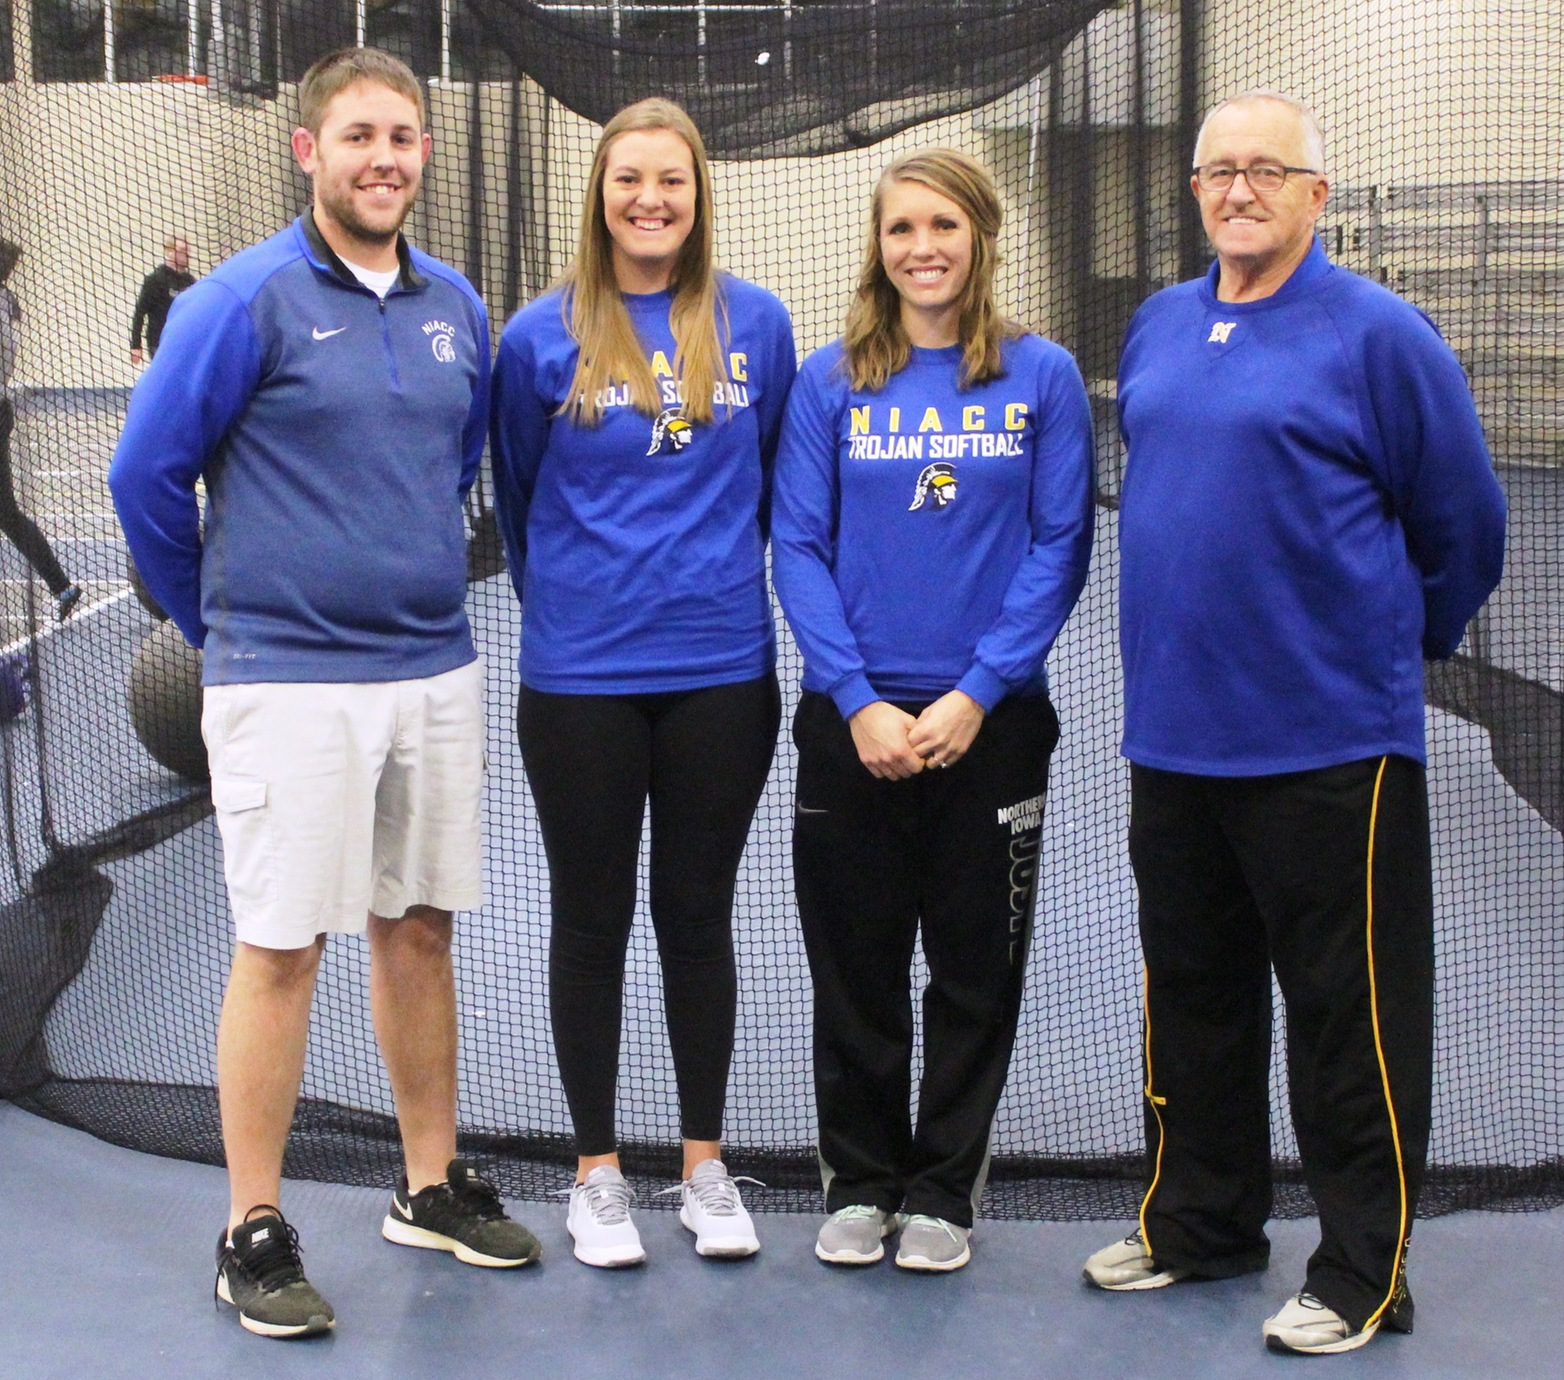 NIACC softball coaches from left: head coach Dan Gratz and assistant coaches Halie Greenwood, Jamie Kruger and Bob Horner.